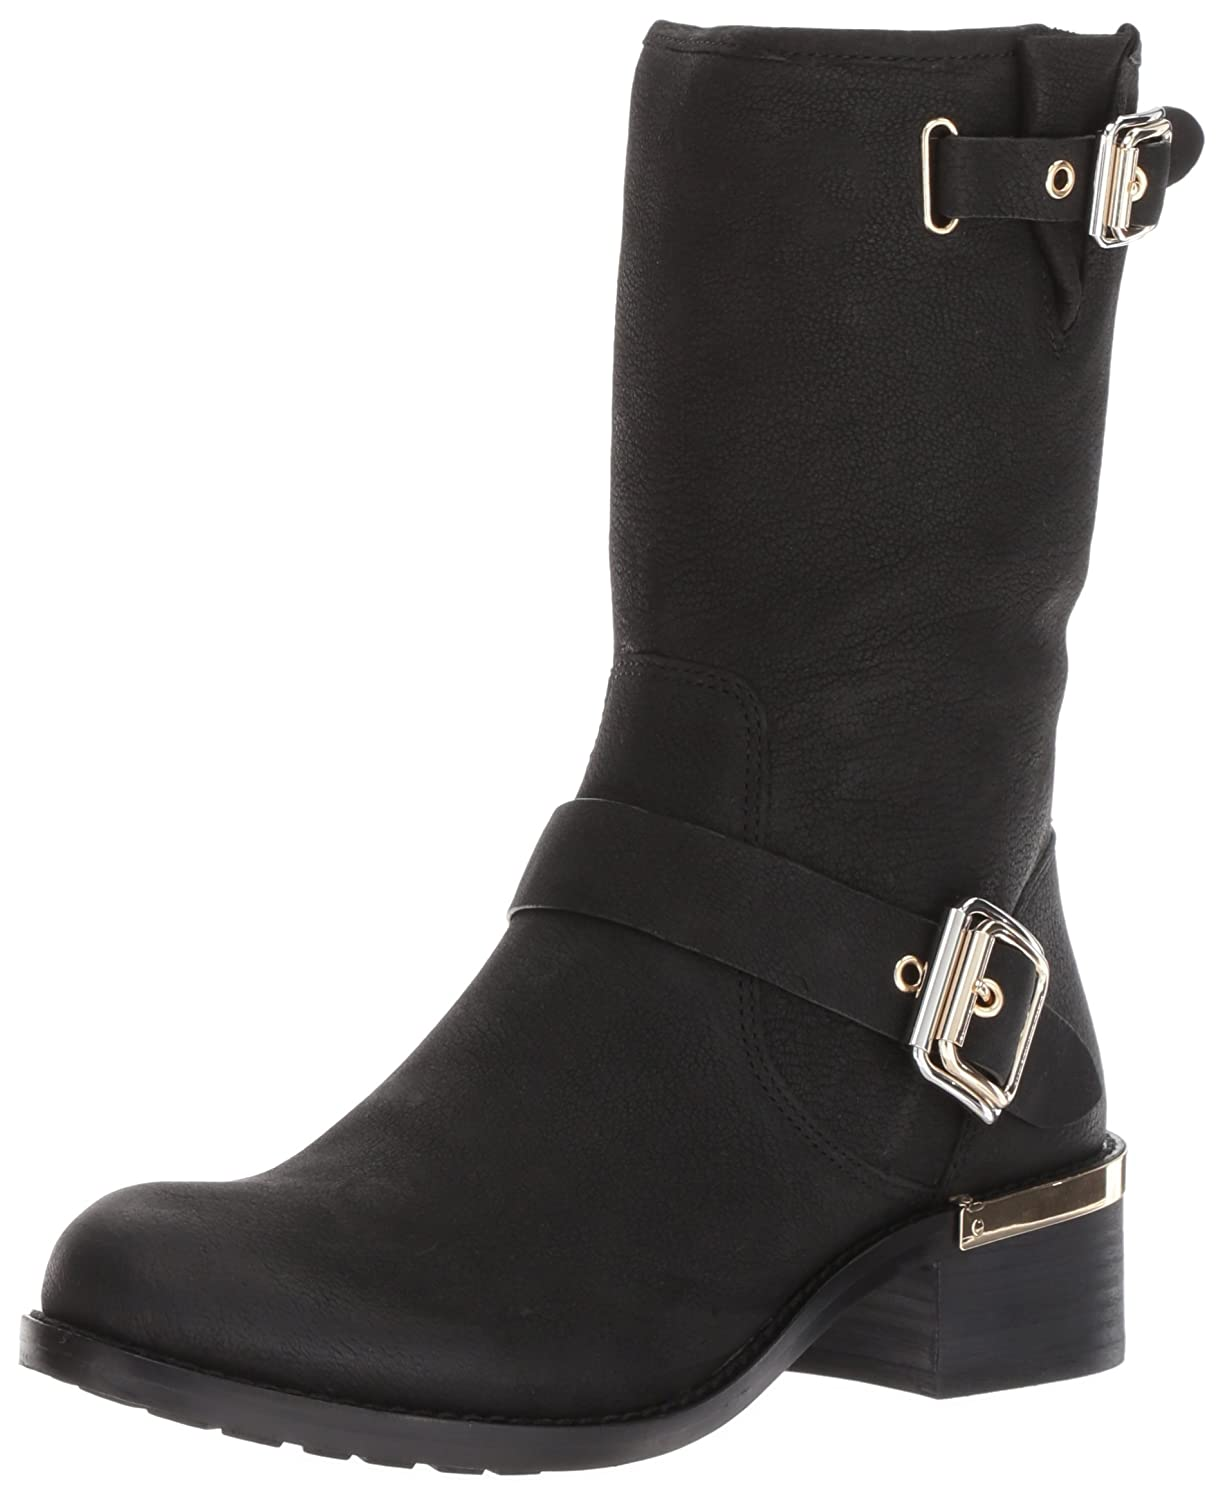 Vince Camuto Women's Windy Motorcycle Boot B071VZ1GNH 7.5 B(M) US|Black